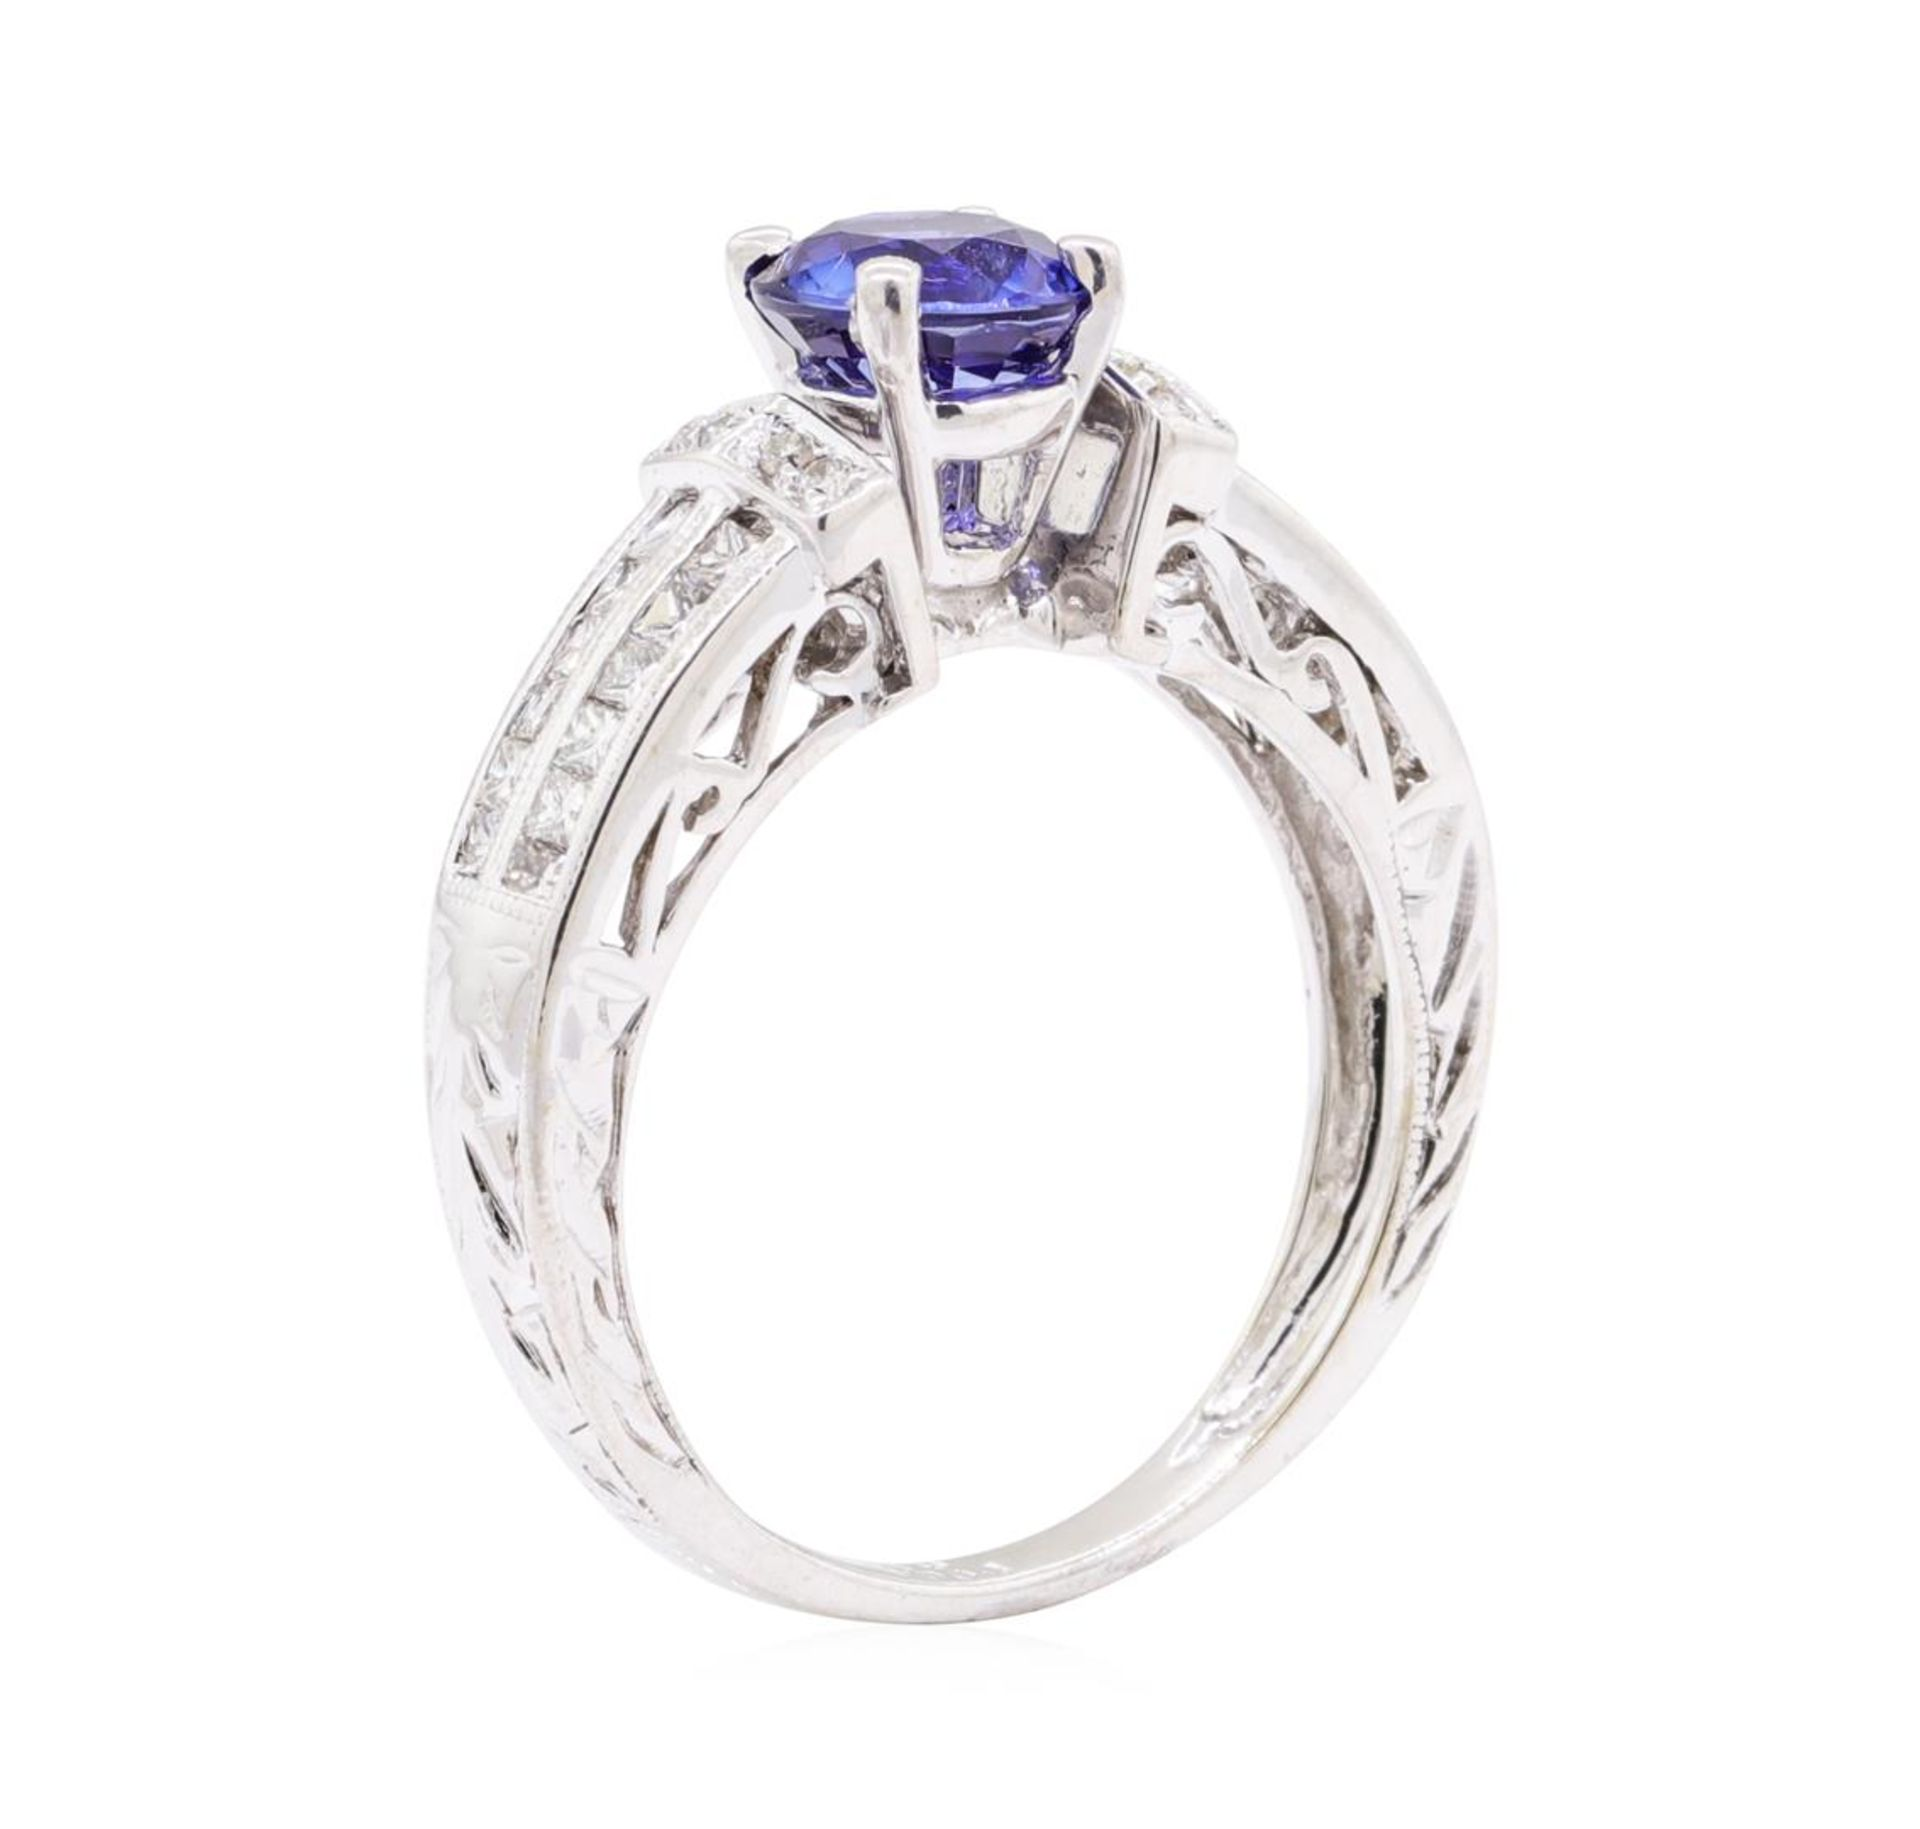 1.36ct Sapphire and Diamond Ring - 14KT White Gold - Image 4 of 4